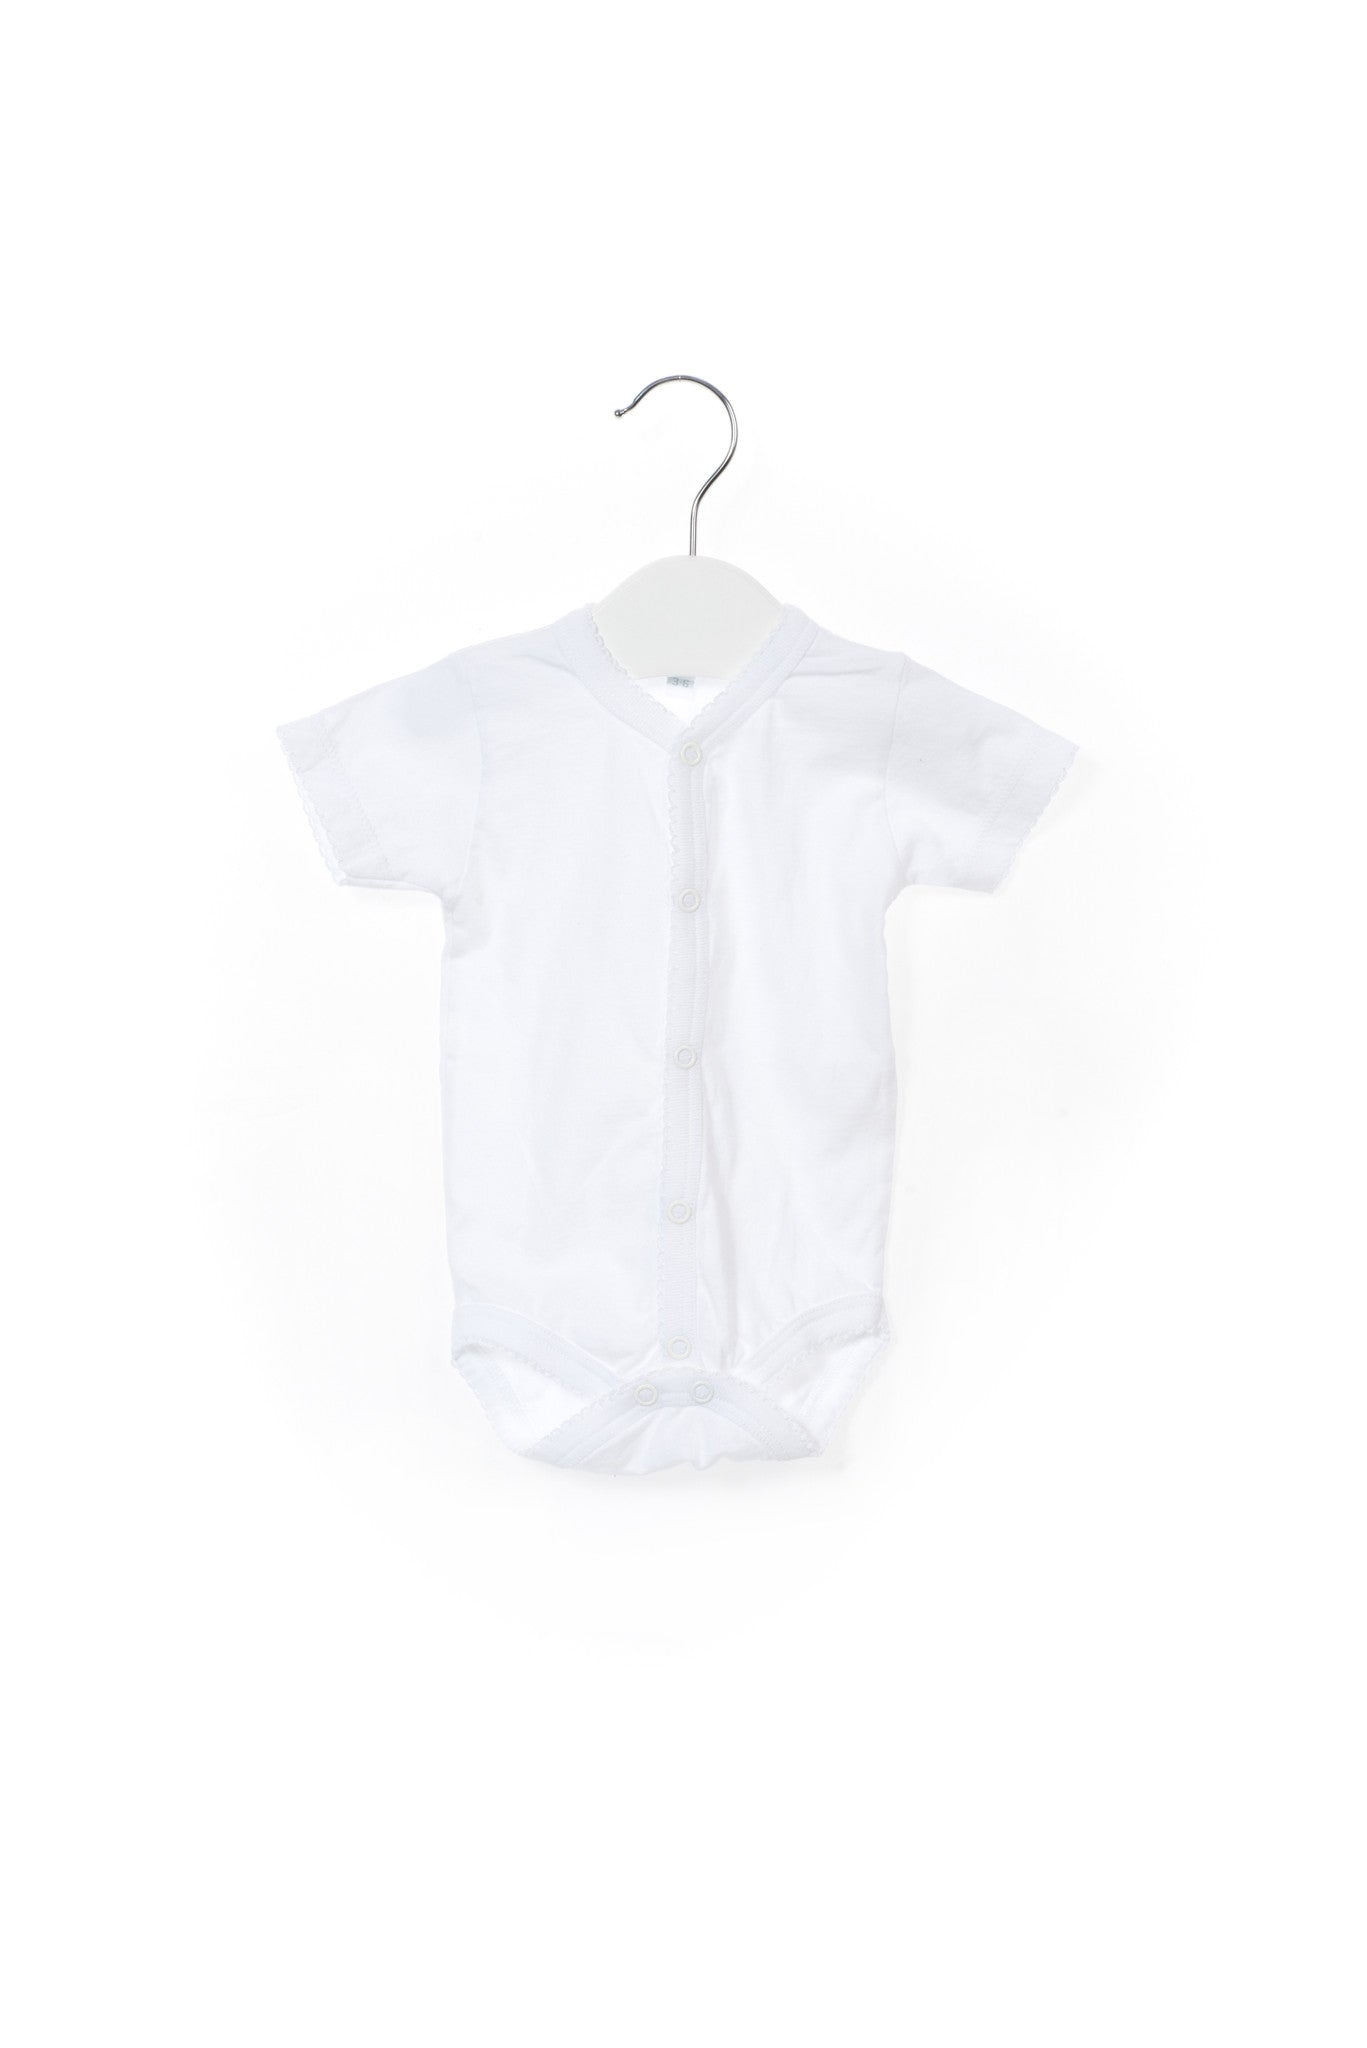 Bodysuit 3-6M, Kissy Kissy at Retykle - Online Baby & Kids Clothing Up to 90% Off